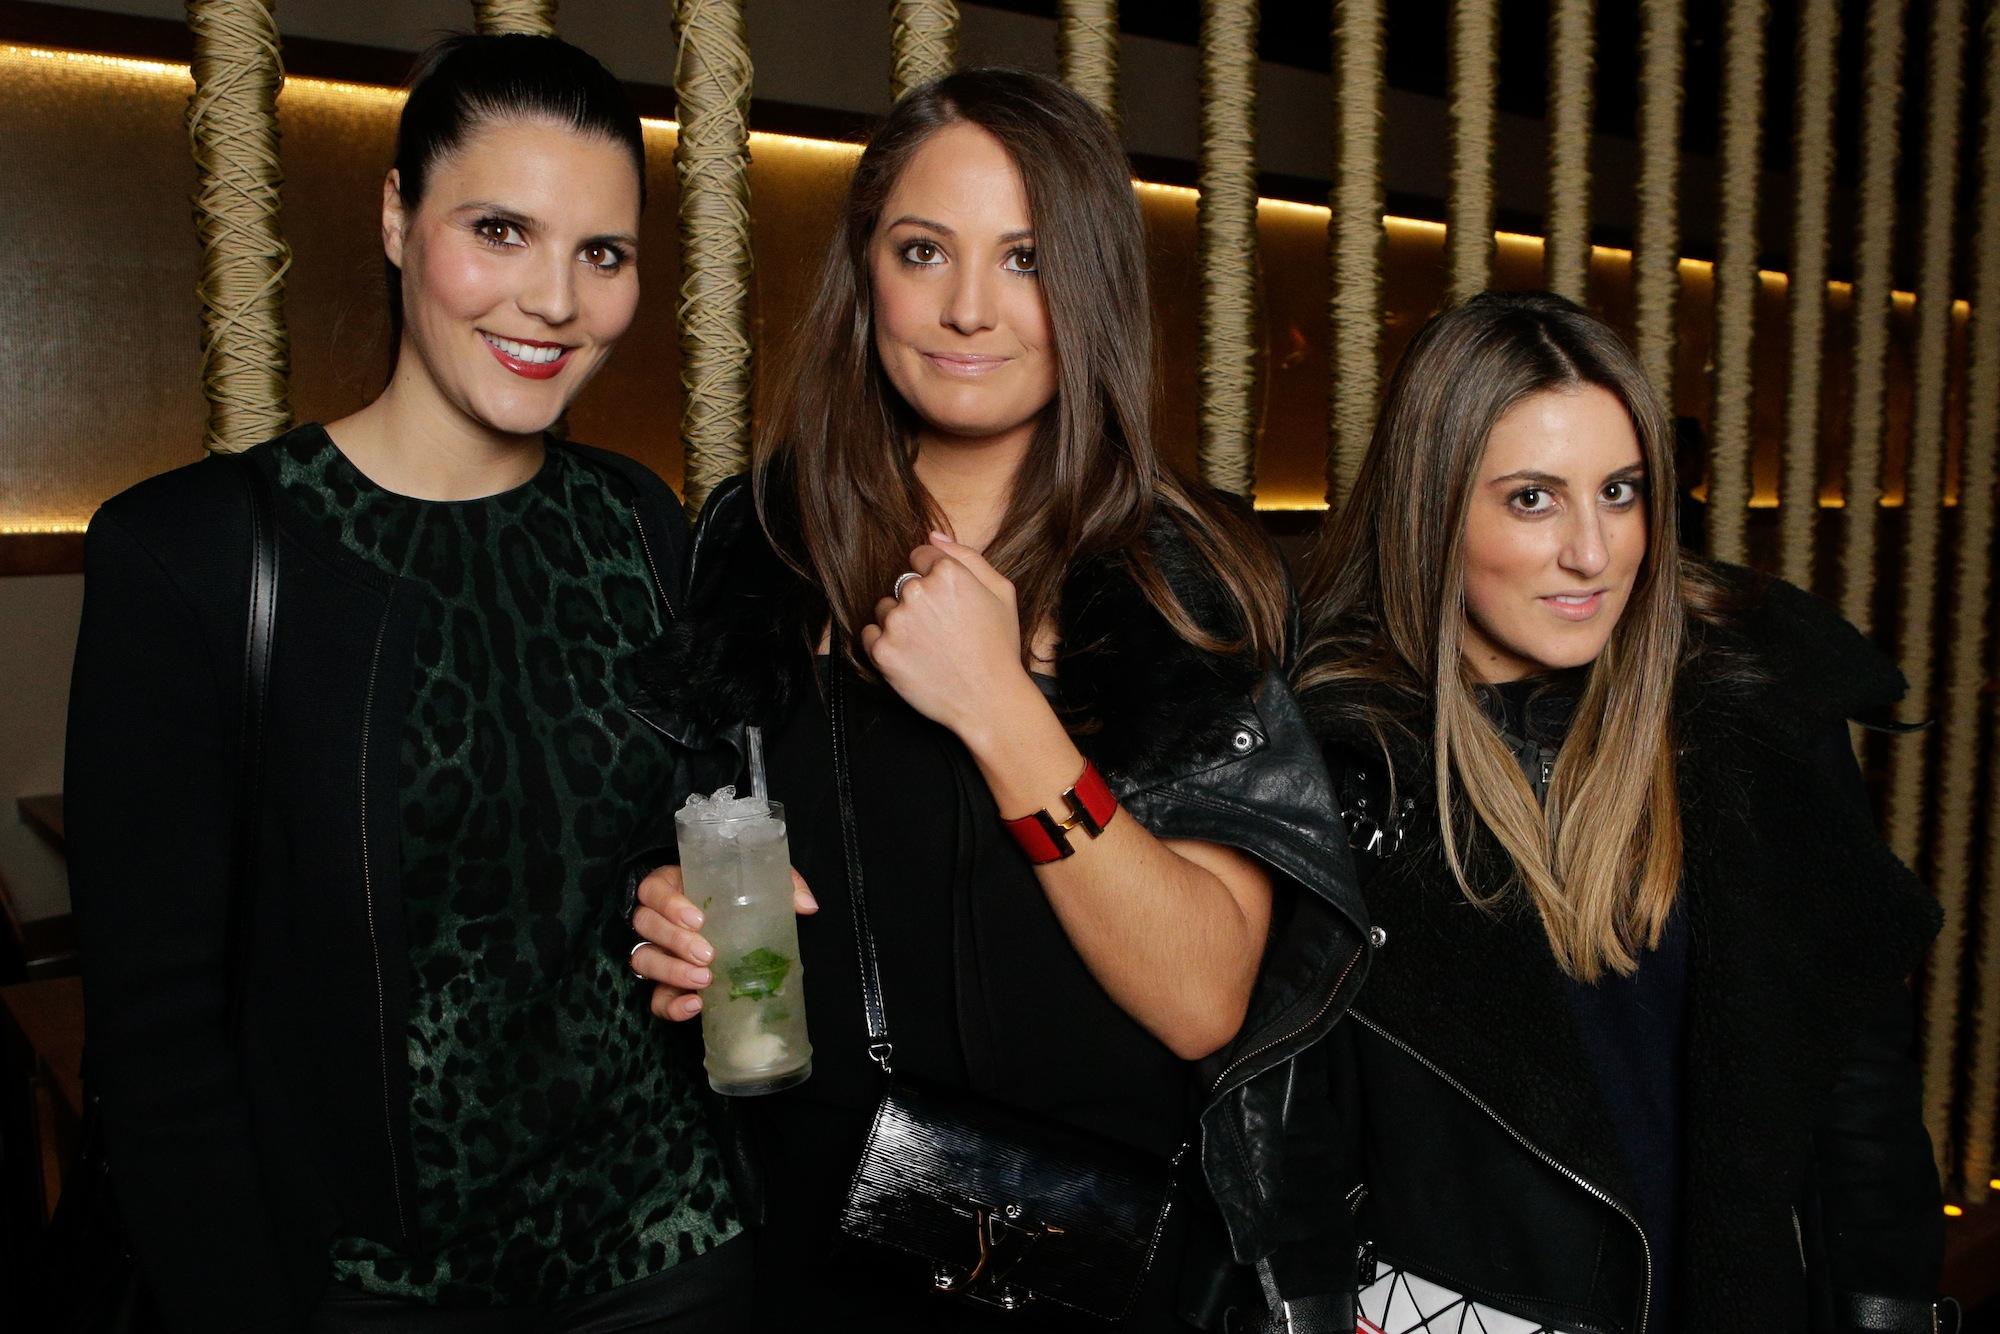 toko-launch-melbourne-lucy-nettlefold-guest-holly-lucas.jpg